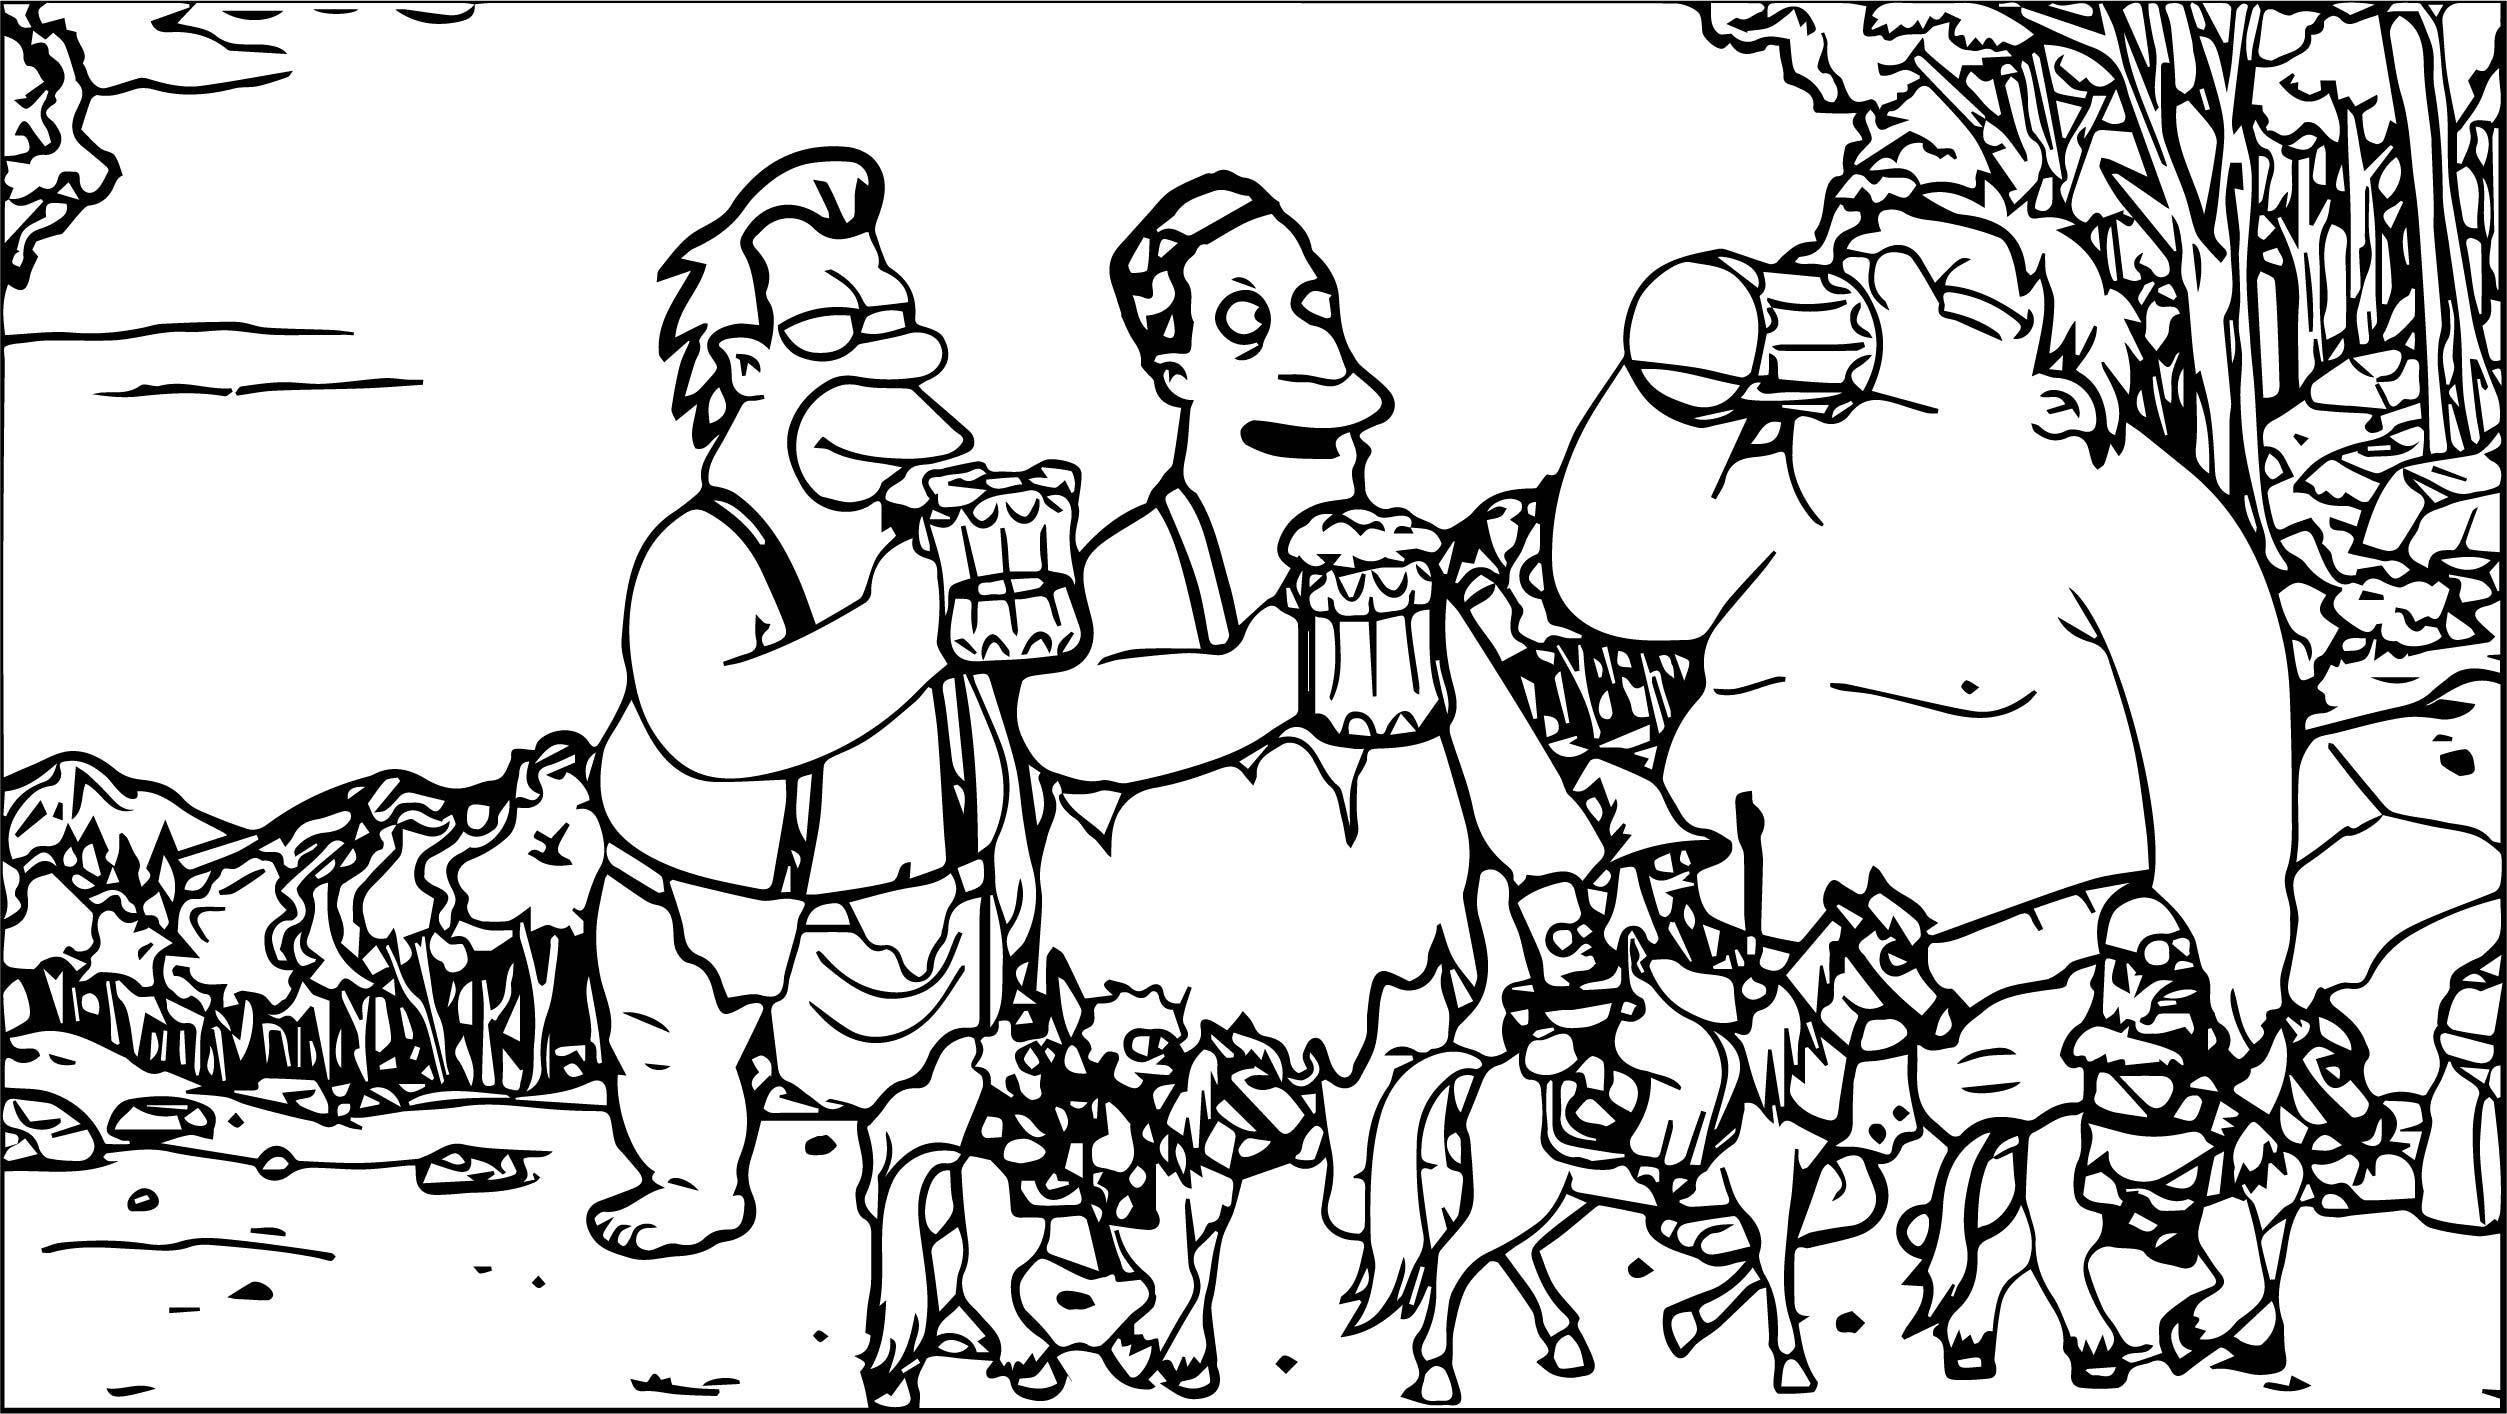 The Simpsons The Hobbit Couch Gag Coloring Page